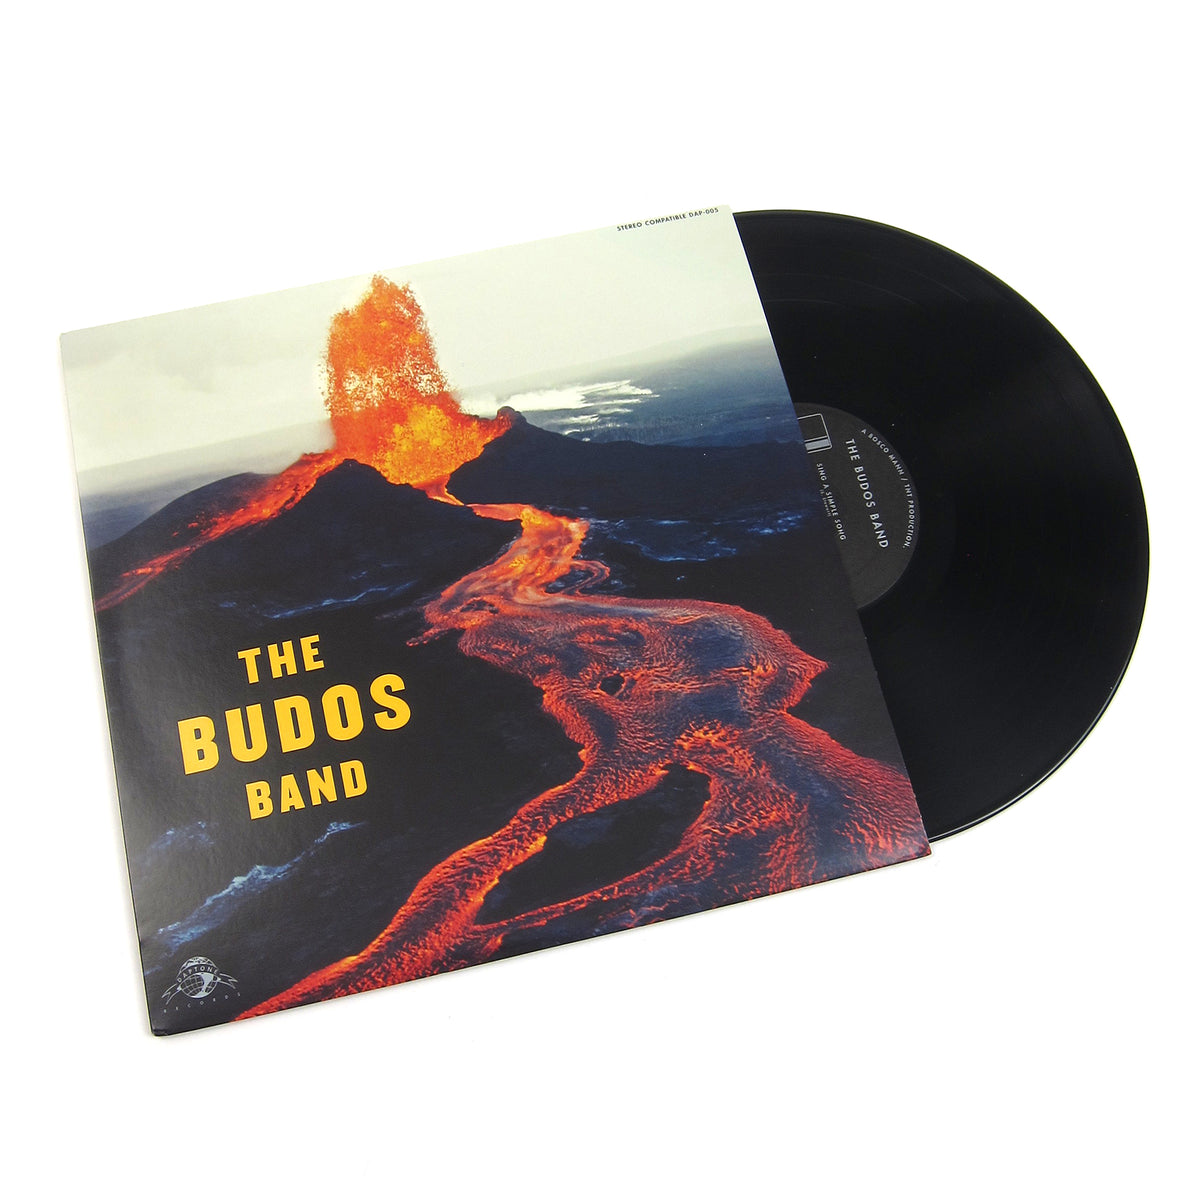 The Budos Band: Budos Band Vinyl LP